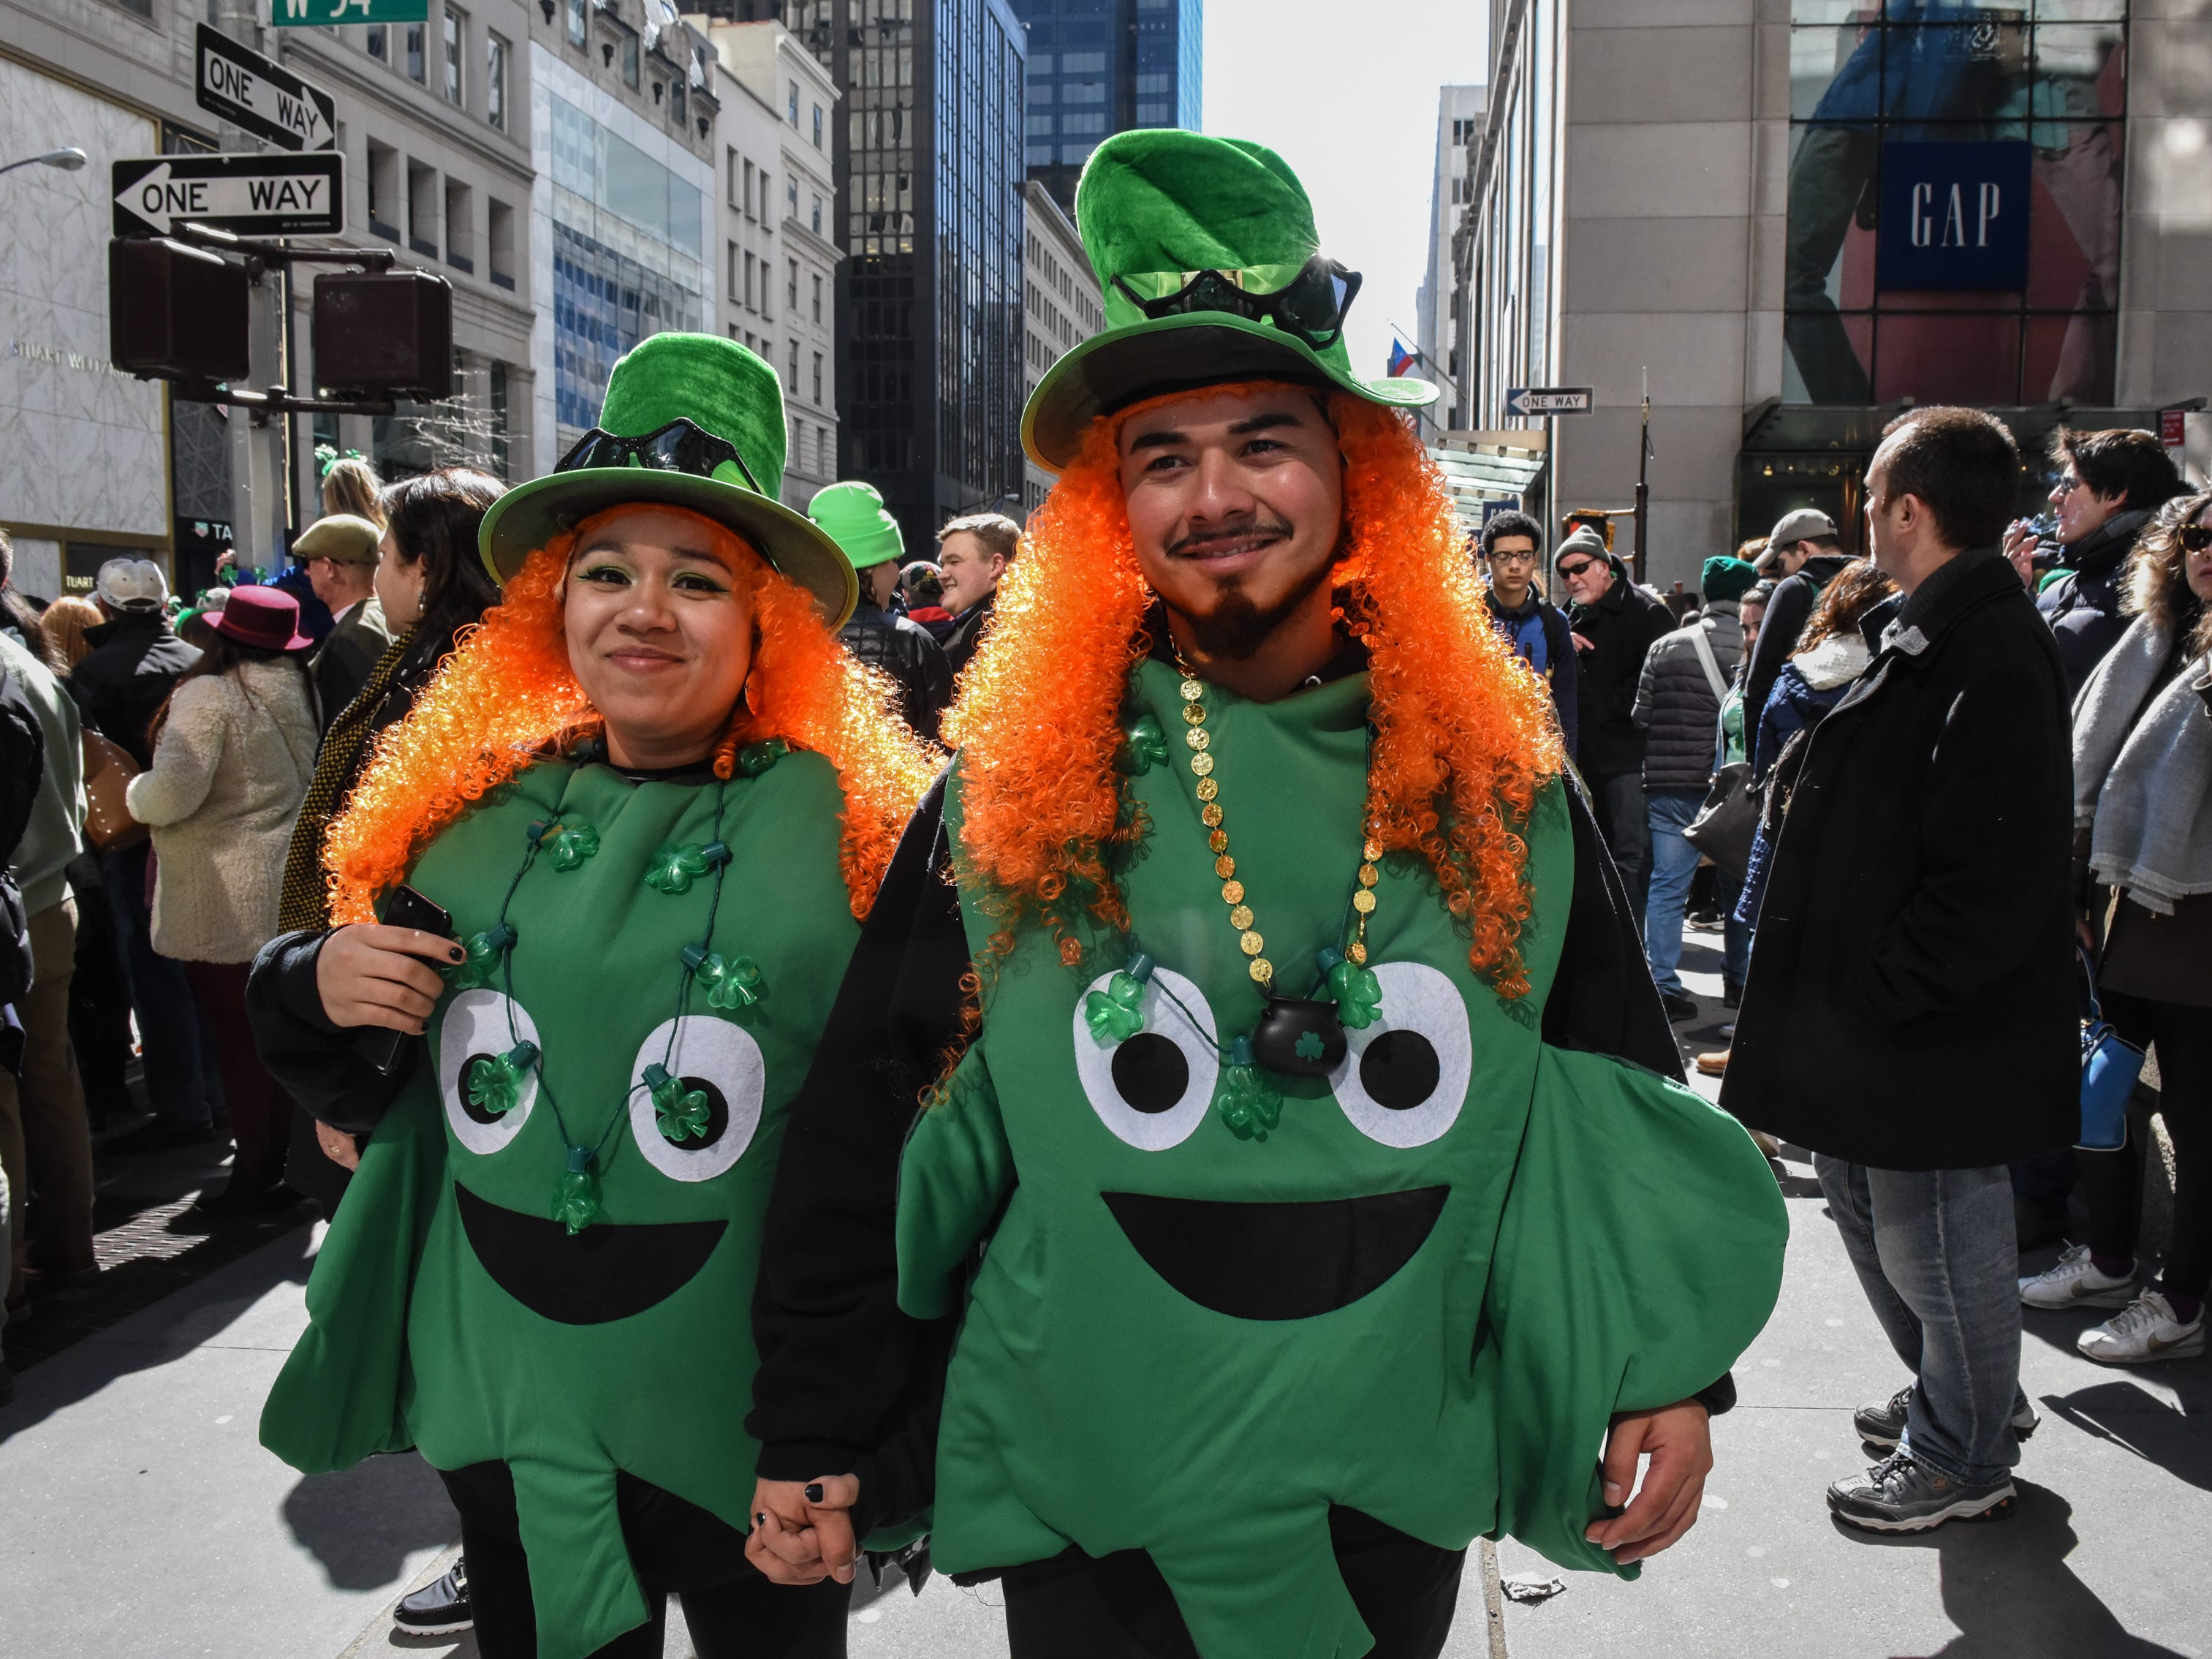 NEW YORK, NY - MARCH 17: People participate on the sidelines of the annual St. Patrick's Day parade along 5th Ave. on March 17, 2018 in New York City. New York's Saint Patrick's Day parade is the largest in the world. (Photo by Stephanie Keith/Getty Images) ORG XMIT: 775141848 ORIG FILE ID: 933084024